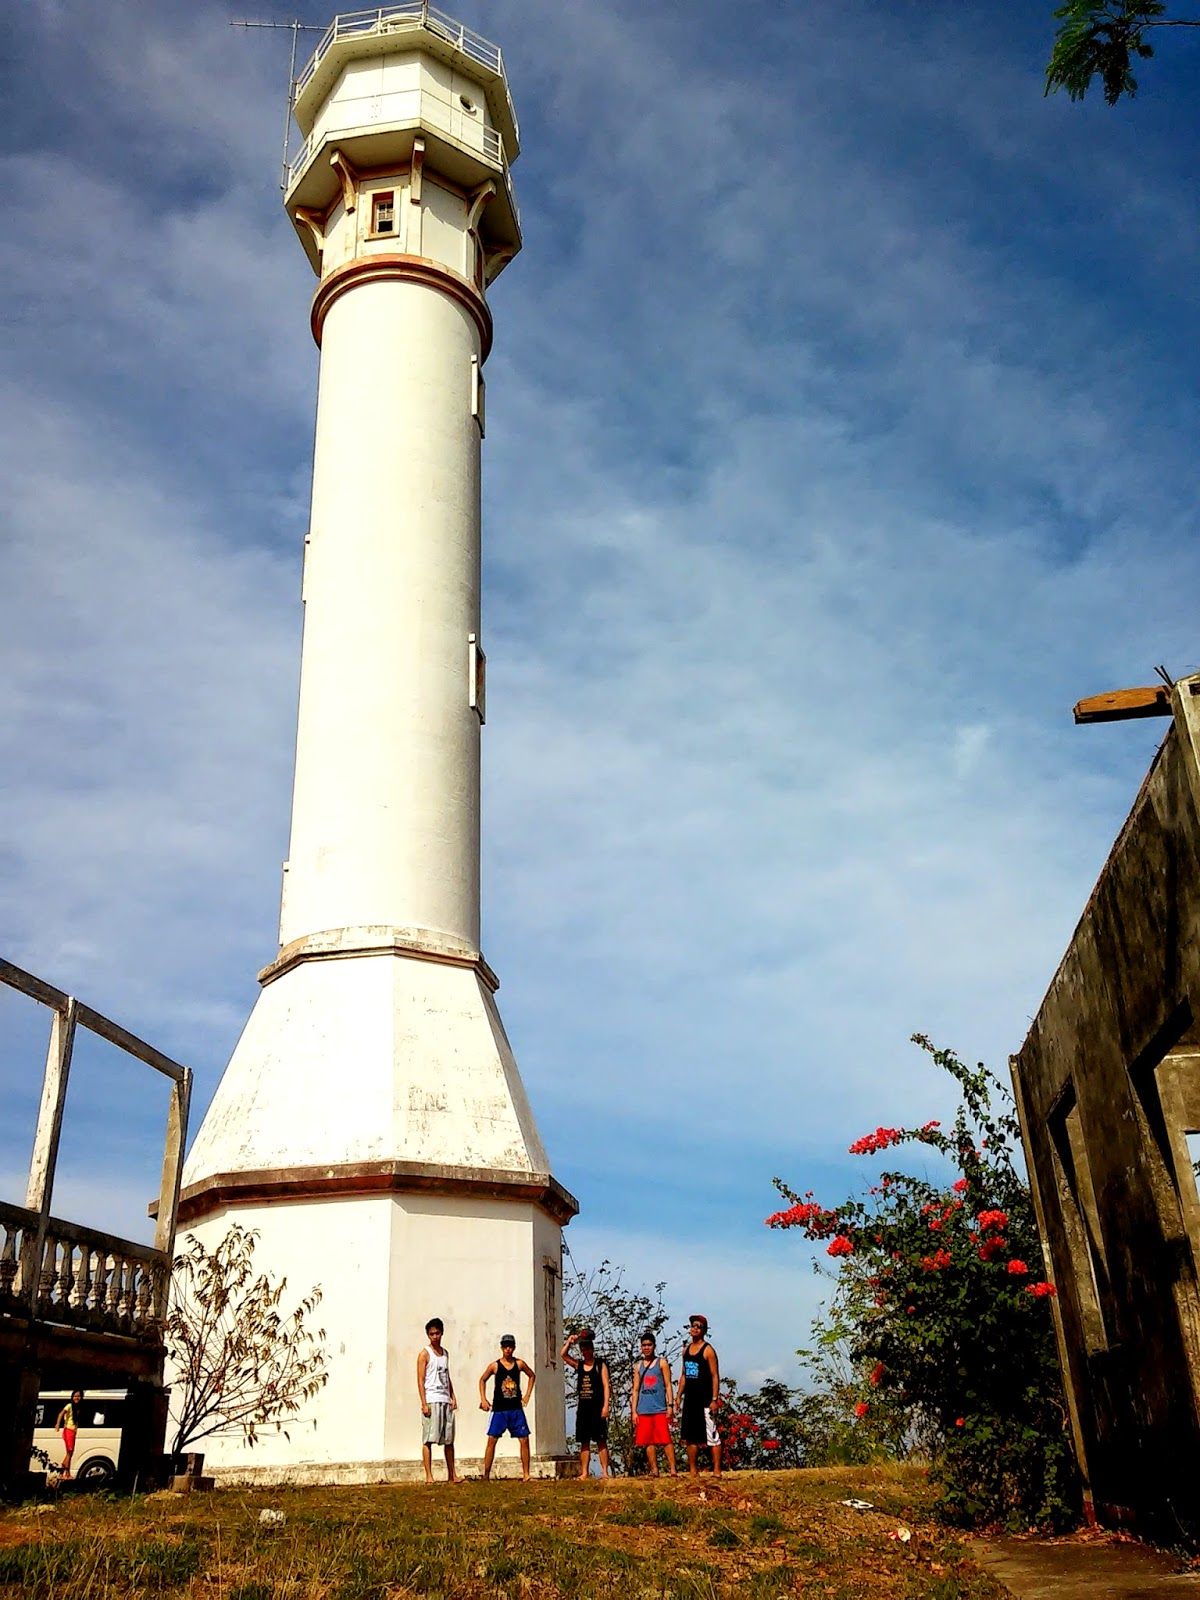 Cape of Bolinao Lighthouse